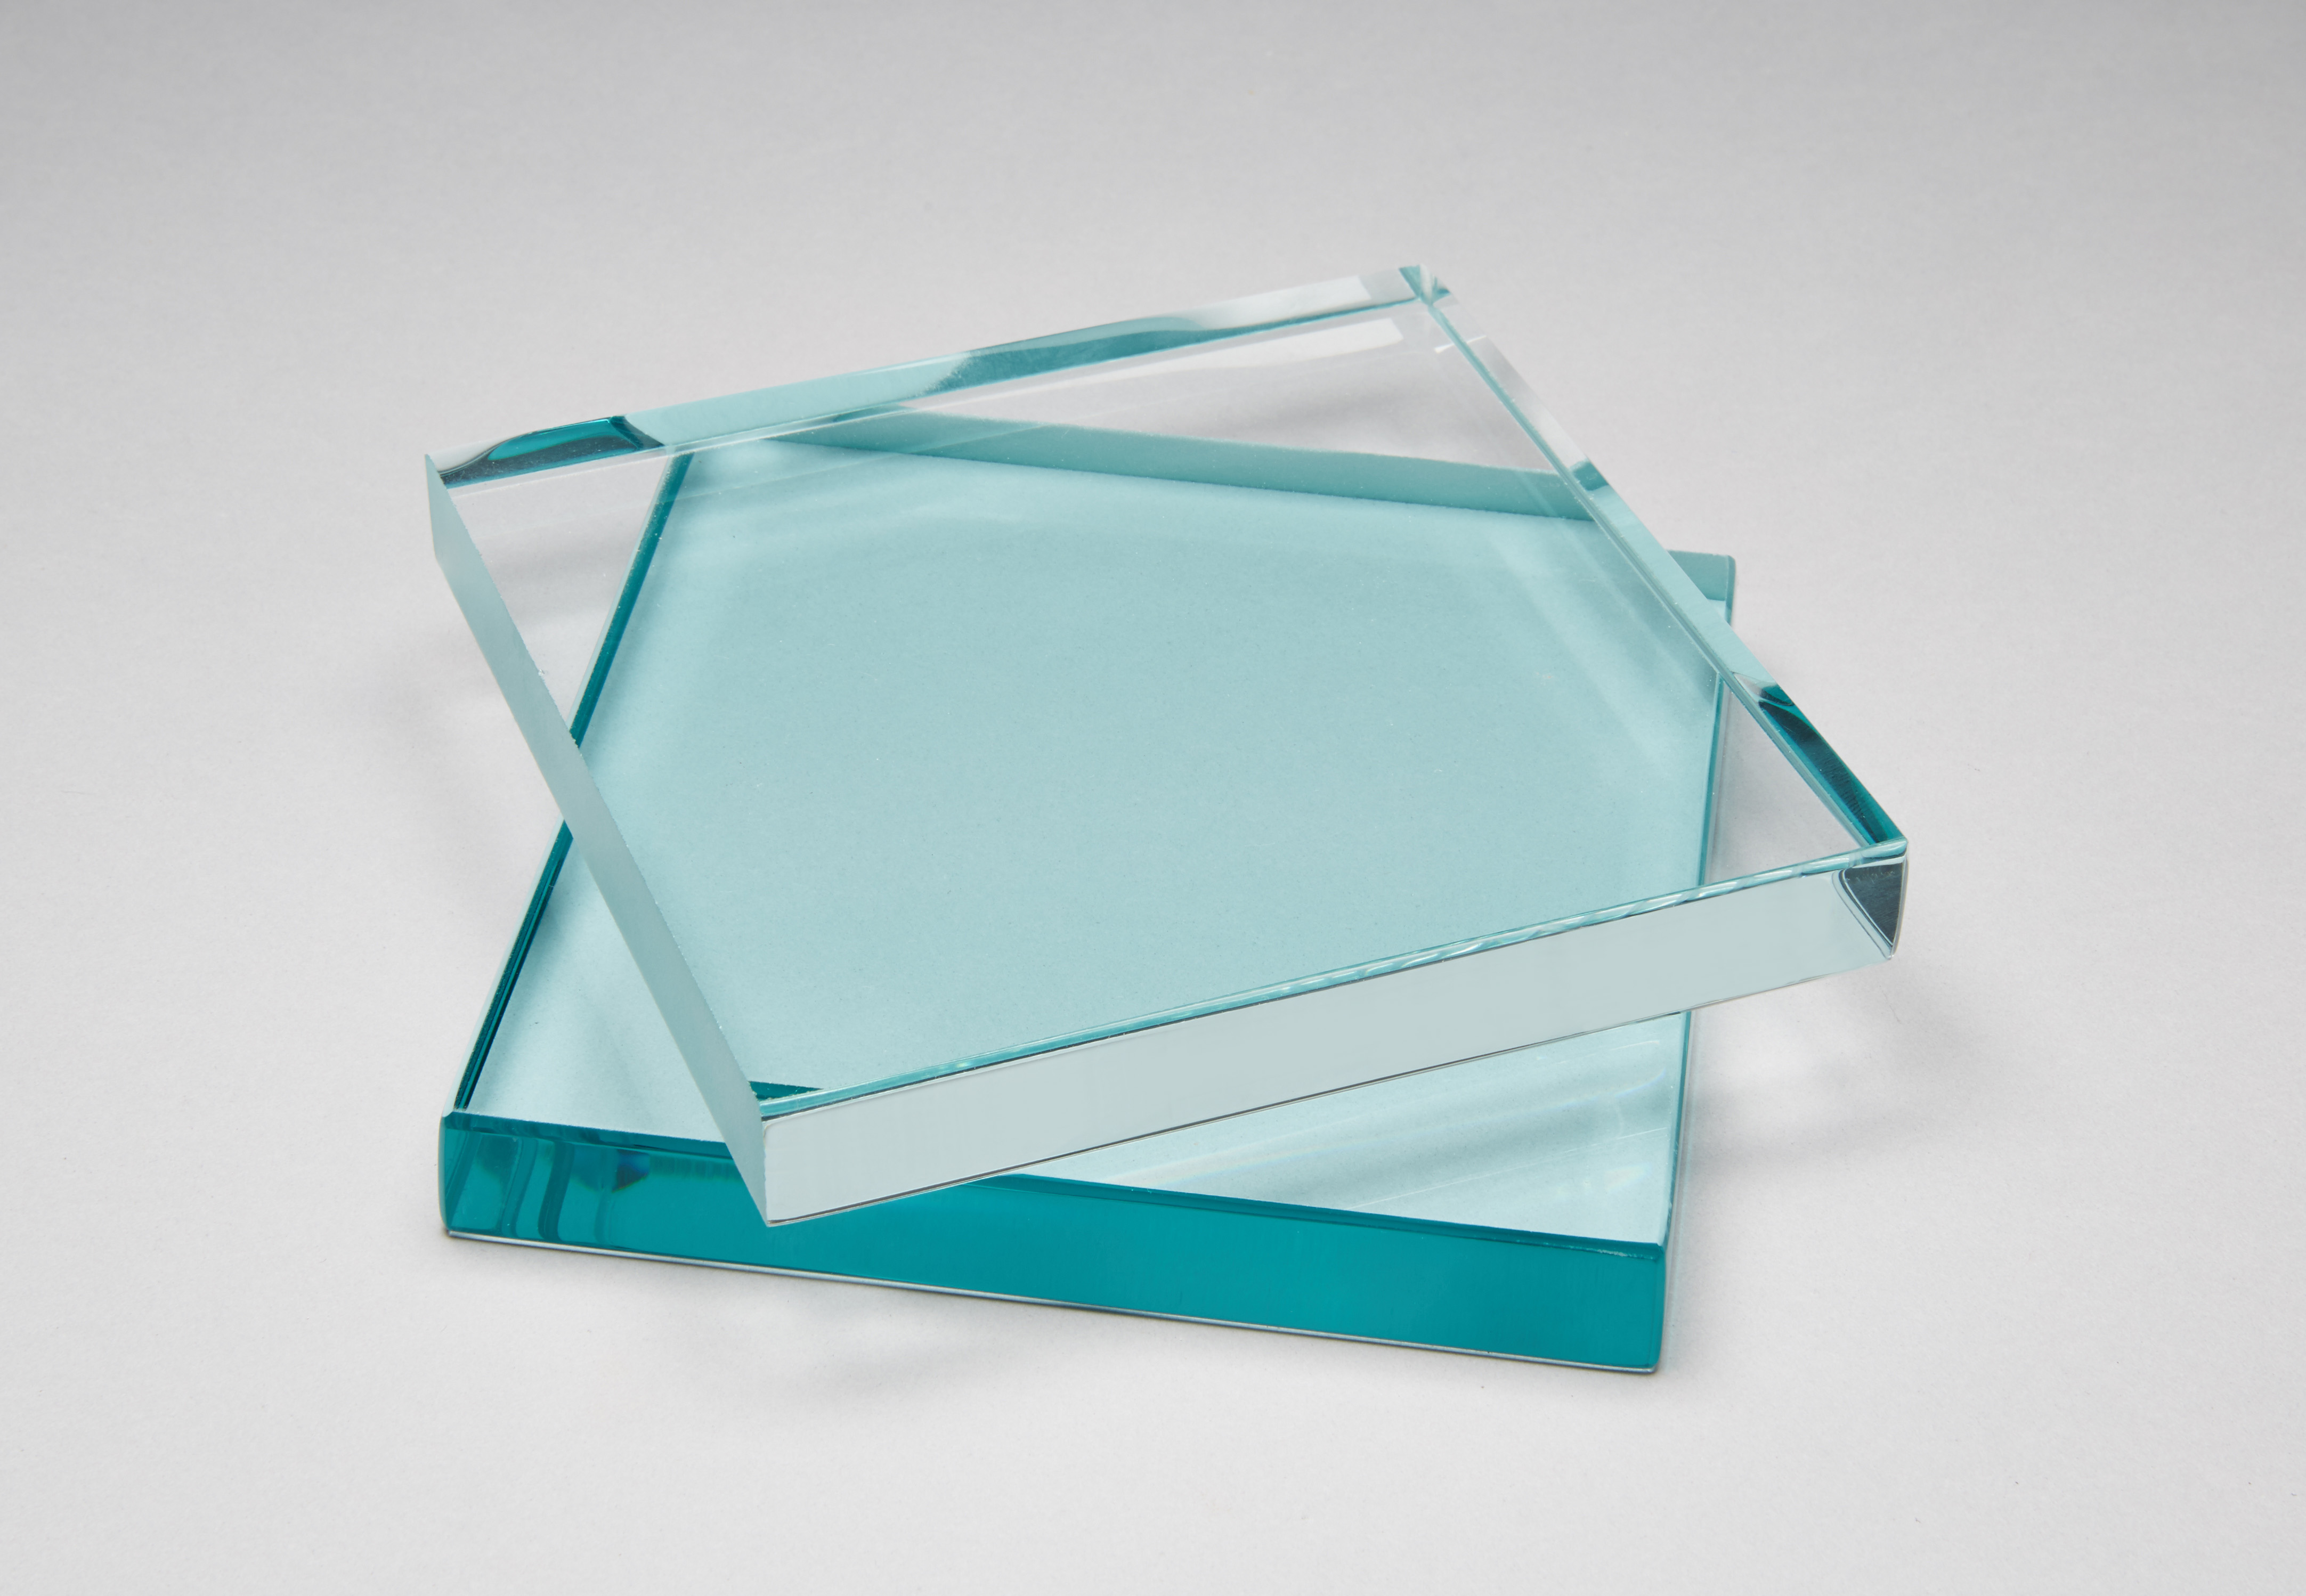 Flat Glass - Studio L ...